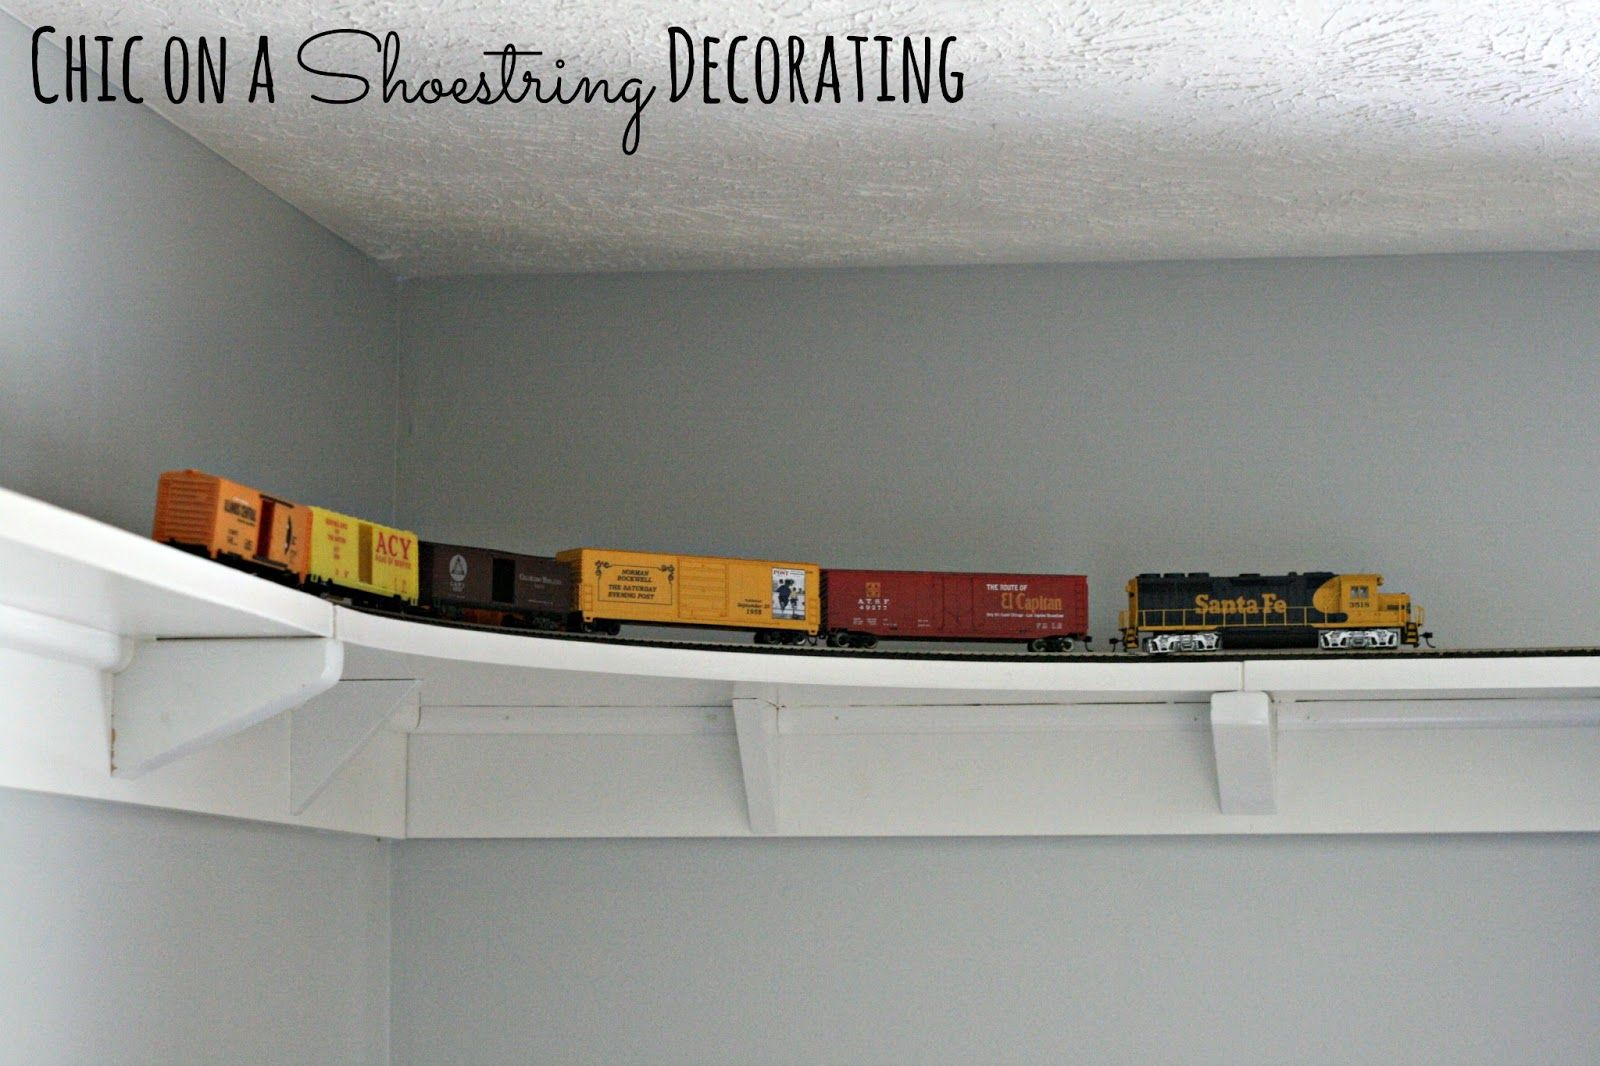 DIY HO Train track shelf around room ceiling by Chic on a Shoestring